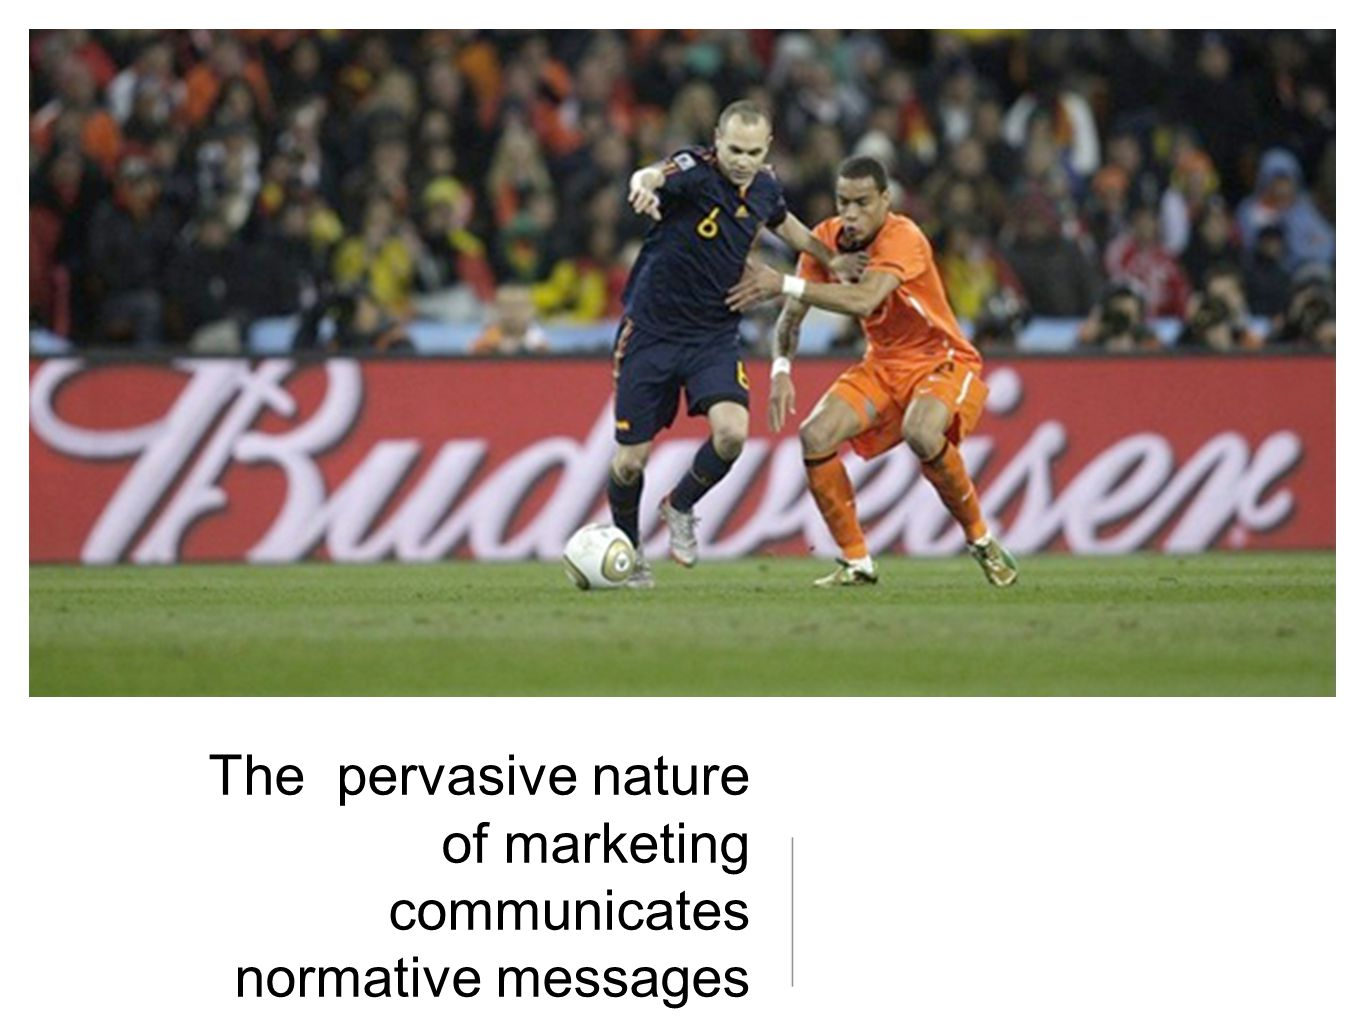 The pervasive nature of marketing communicates normative messages